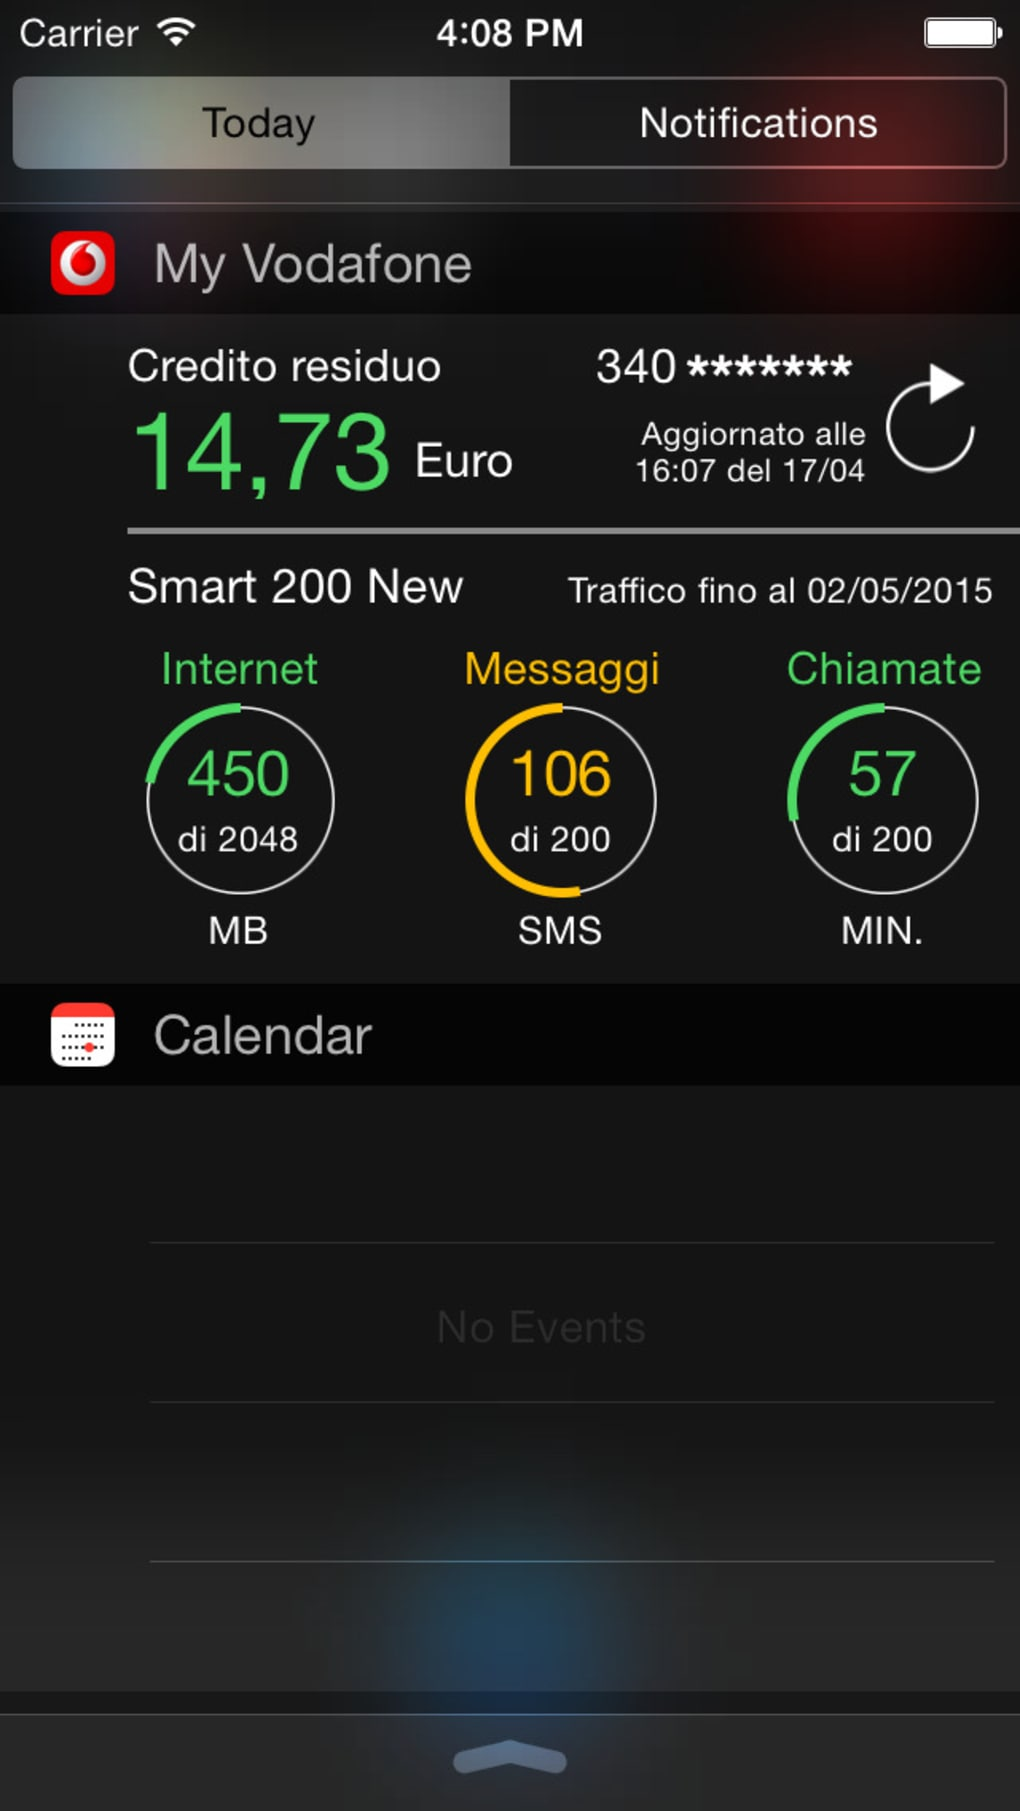 My Vodafone per iPhone - Download